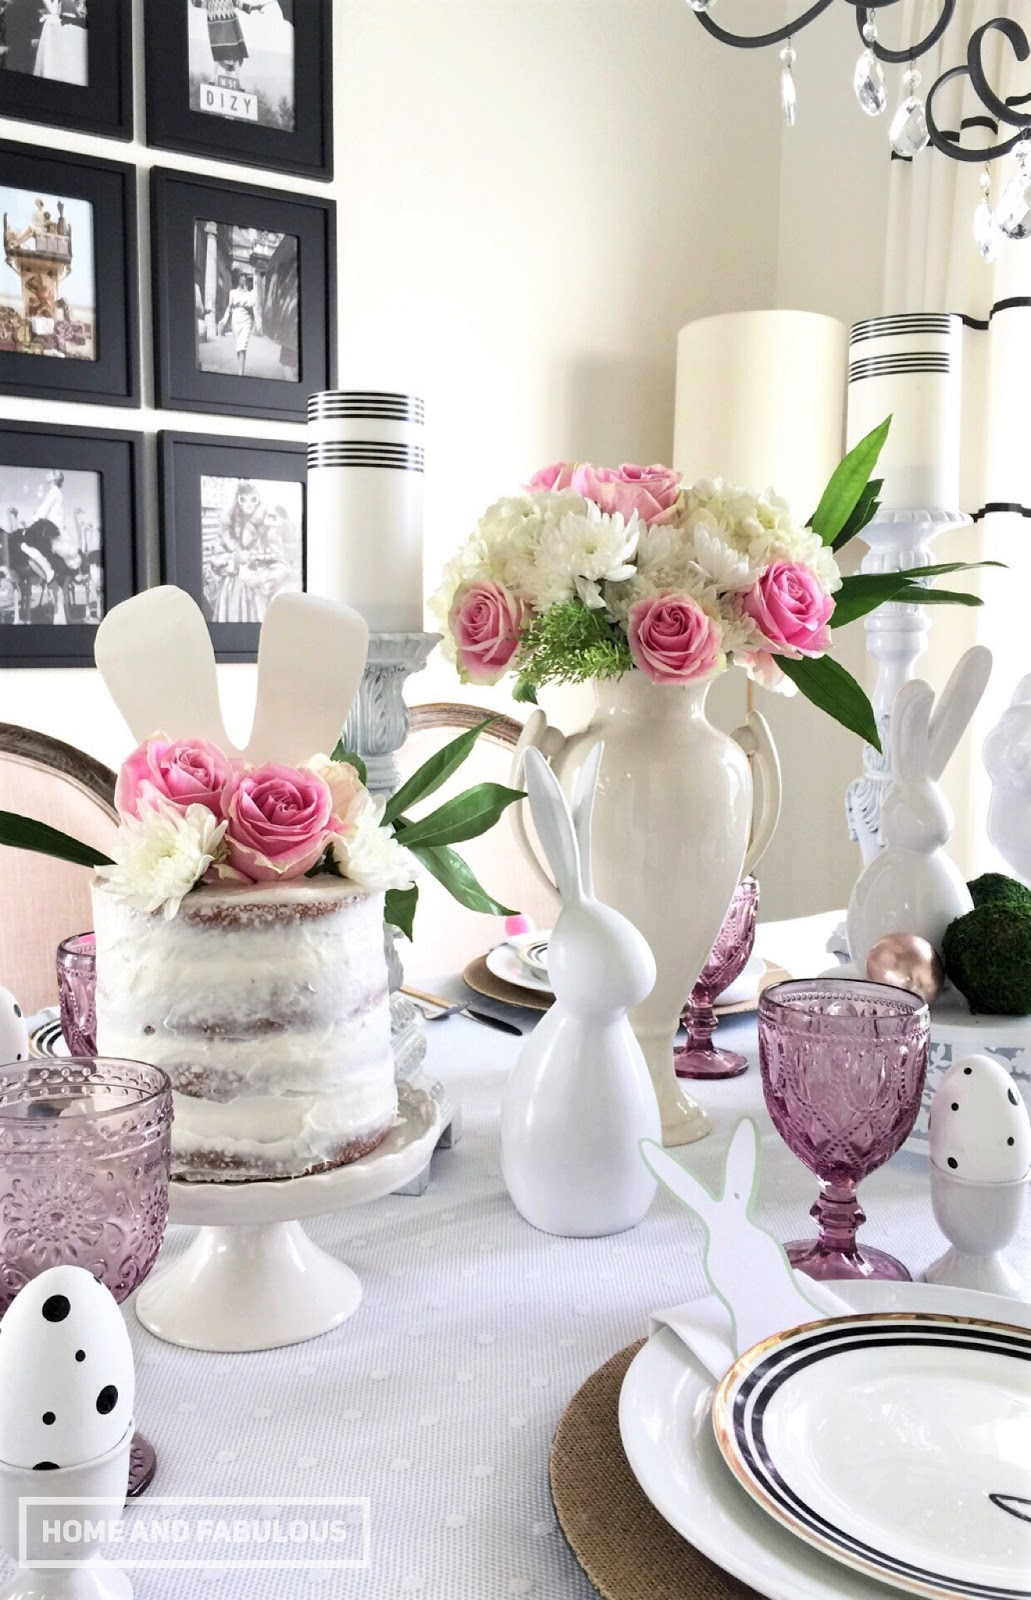 Home and Fabulous: 14 IDEAS TO STYLE YOUR HOME FOR SPRING